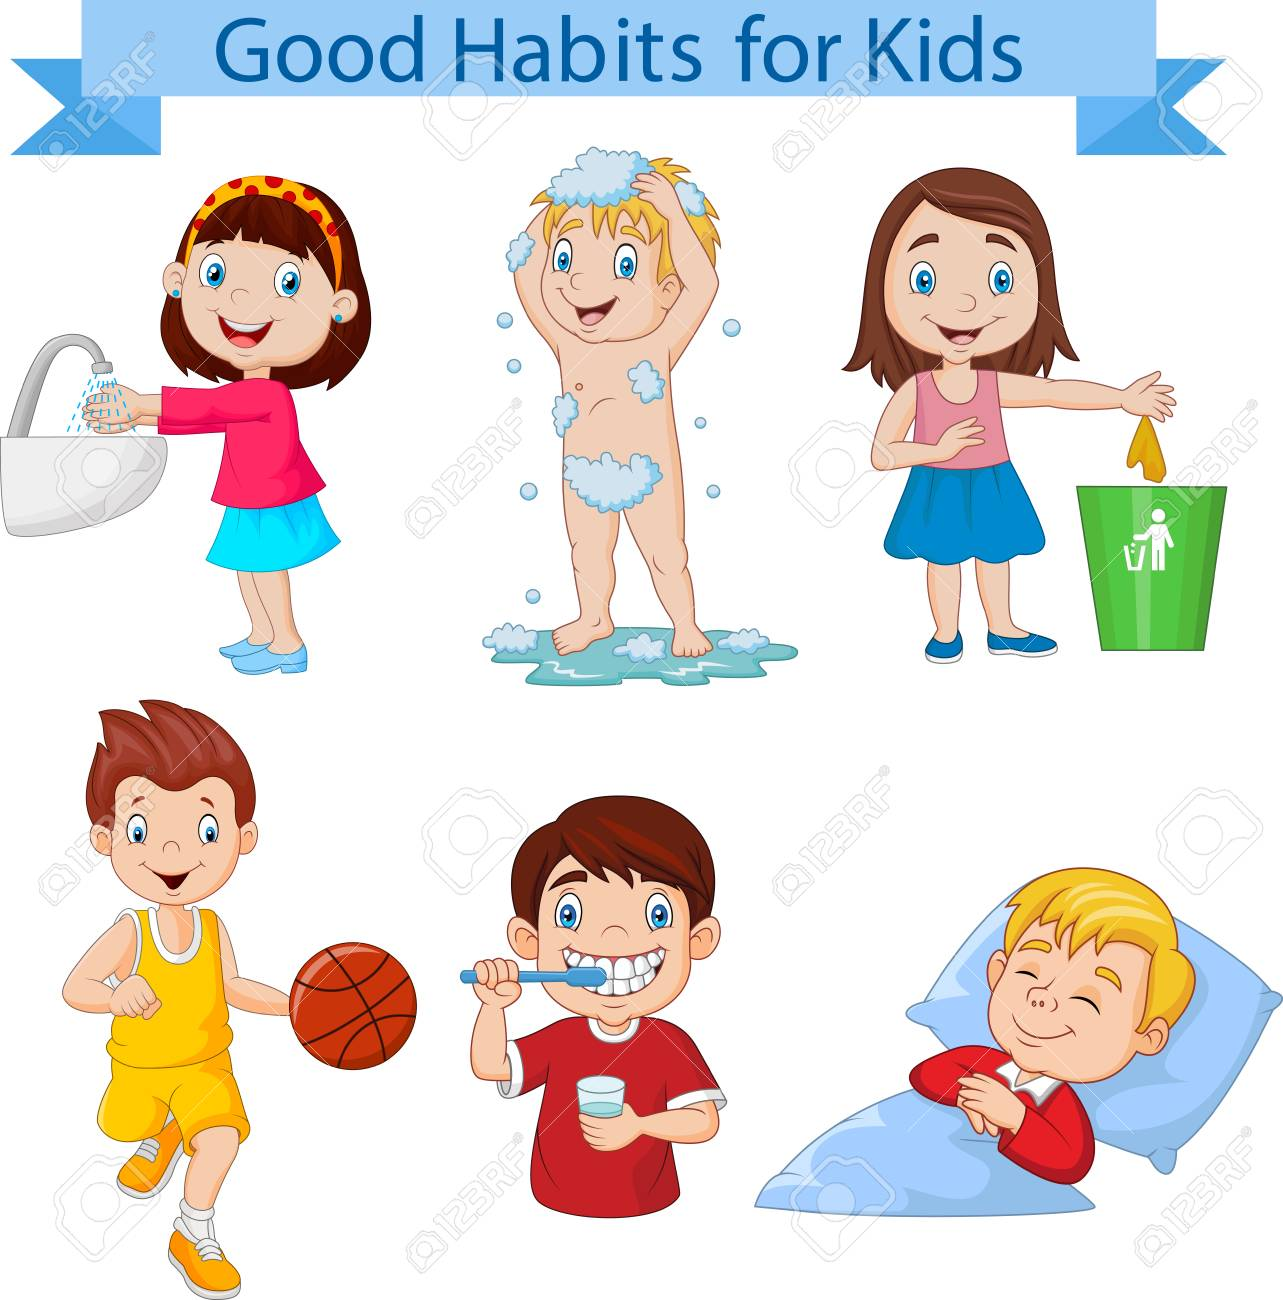 Vector illustration of Good habits collection for kids.